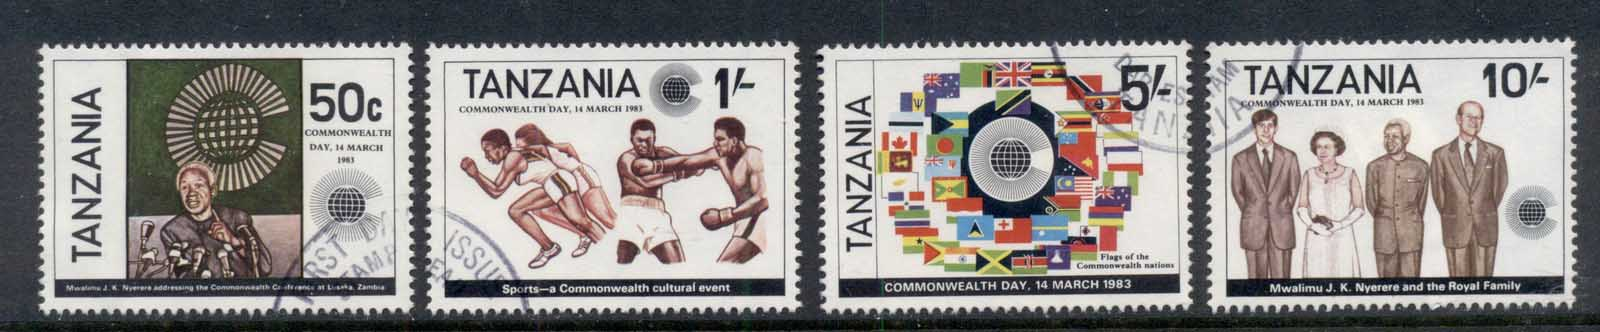 Tanzania 1983 Commonwealth Day FU